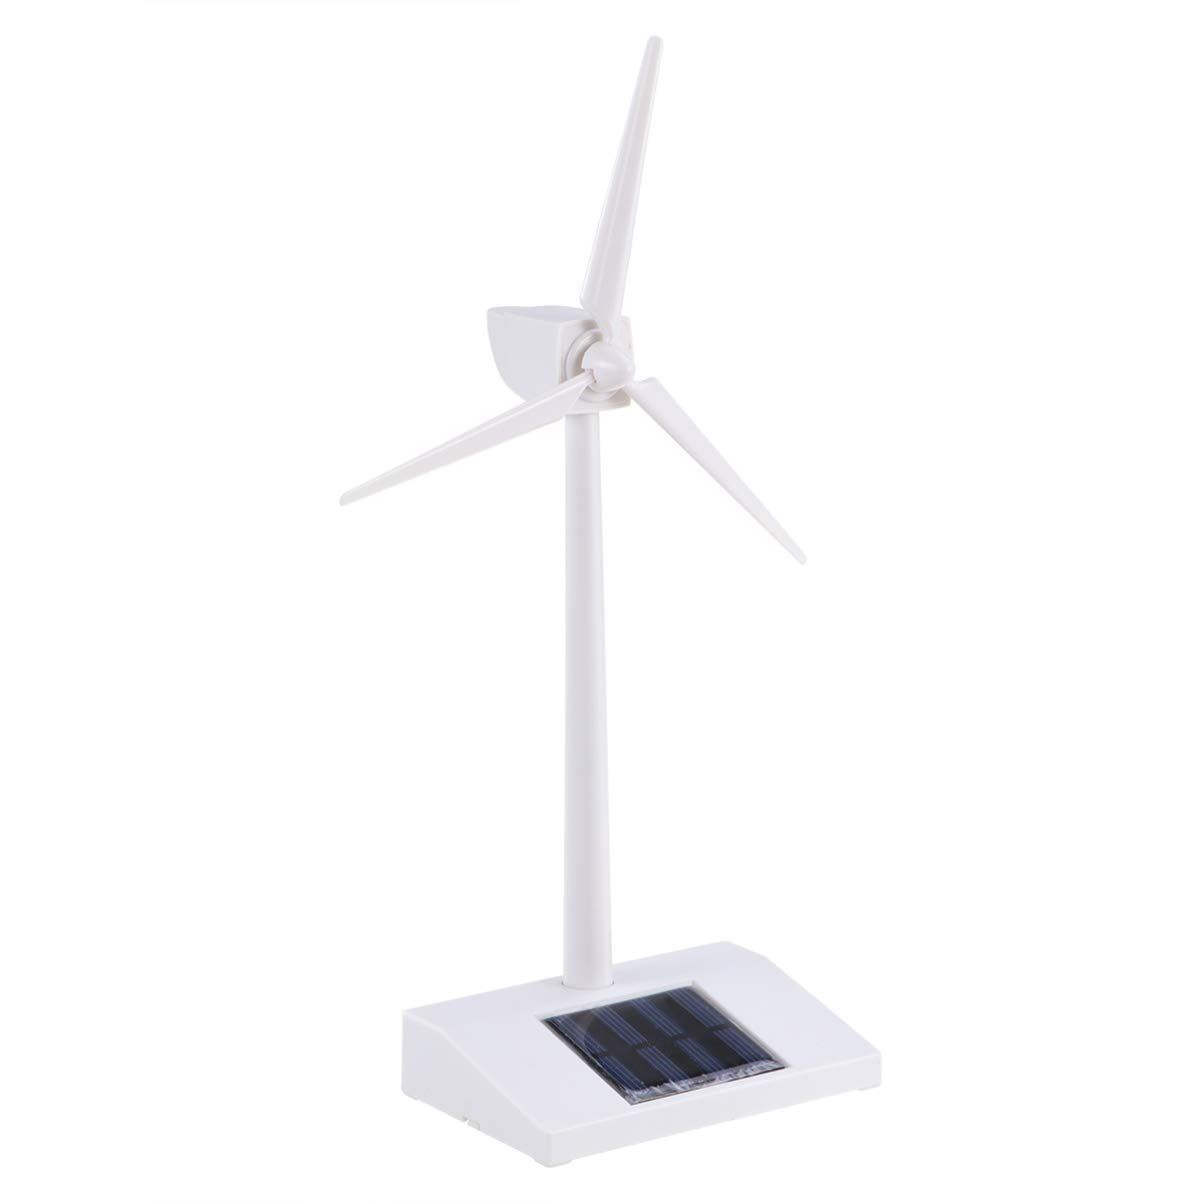 STOBOK ABS Plastics White Solar-Energy Windmill Desk Ornament Wind Turbine Model Windmills Model for Kids Education Fun and Education Children Education by STOBOK